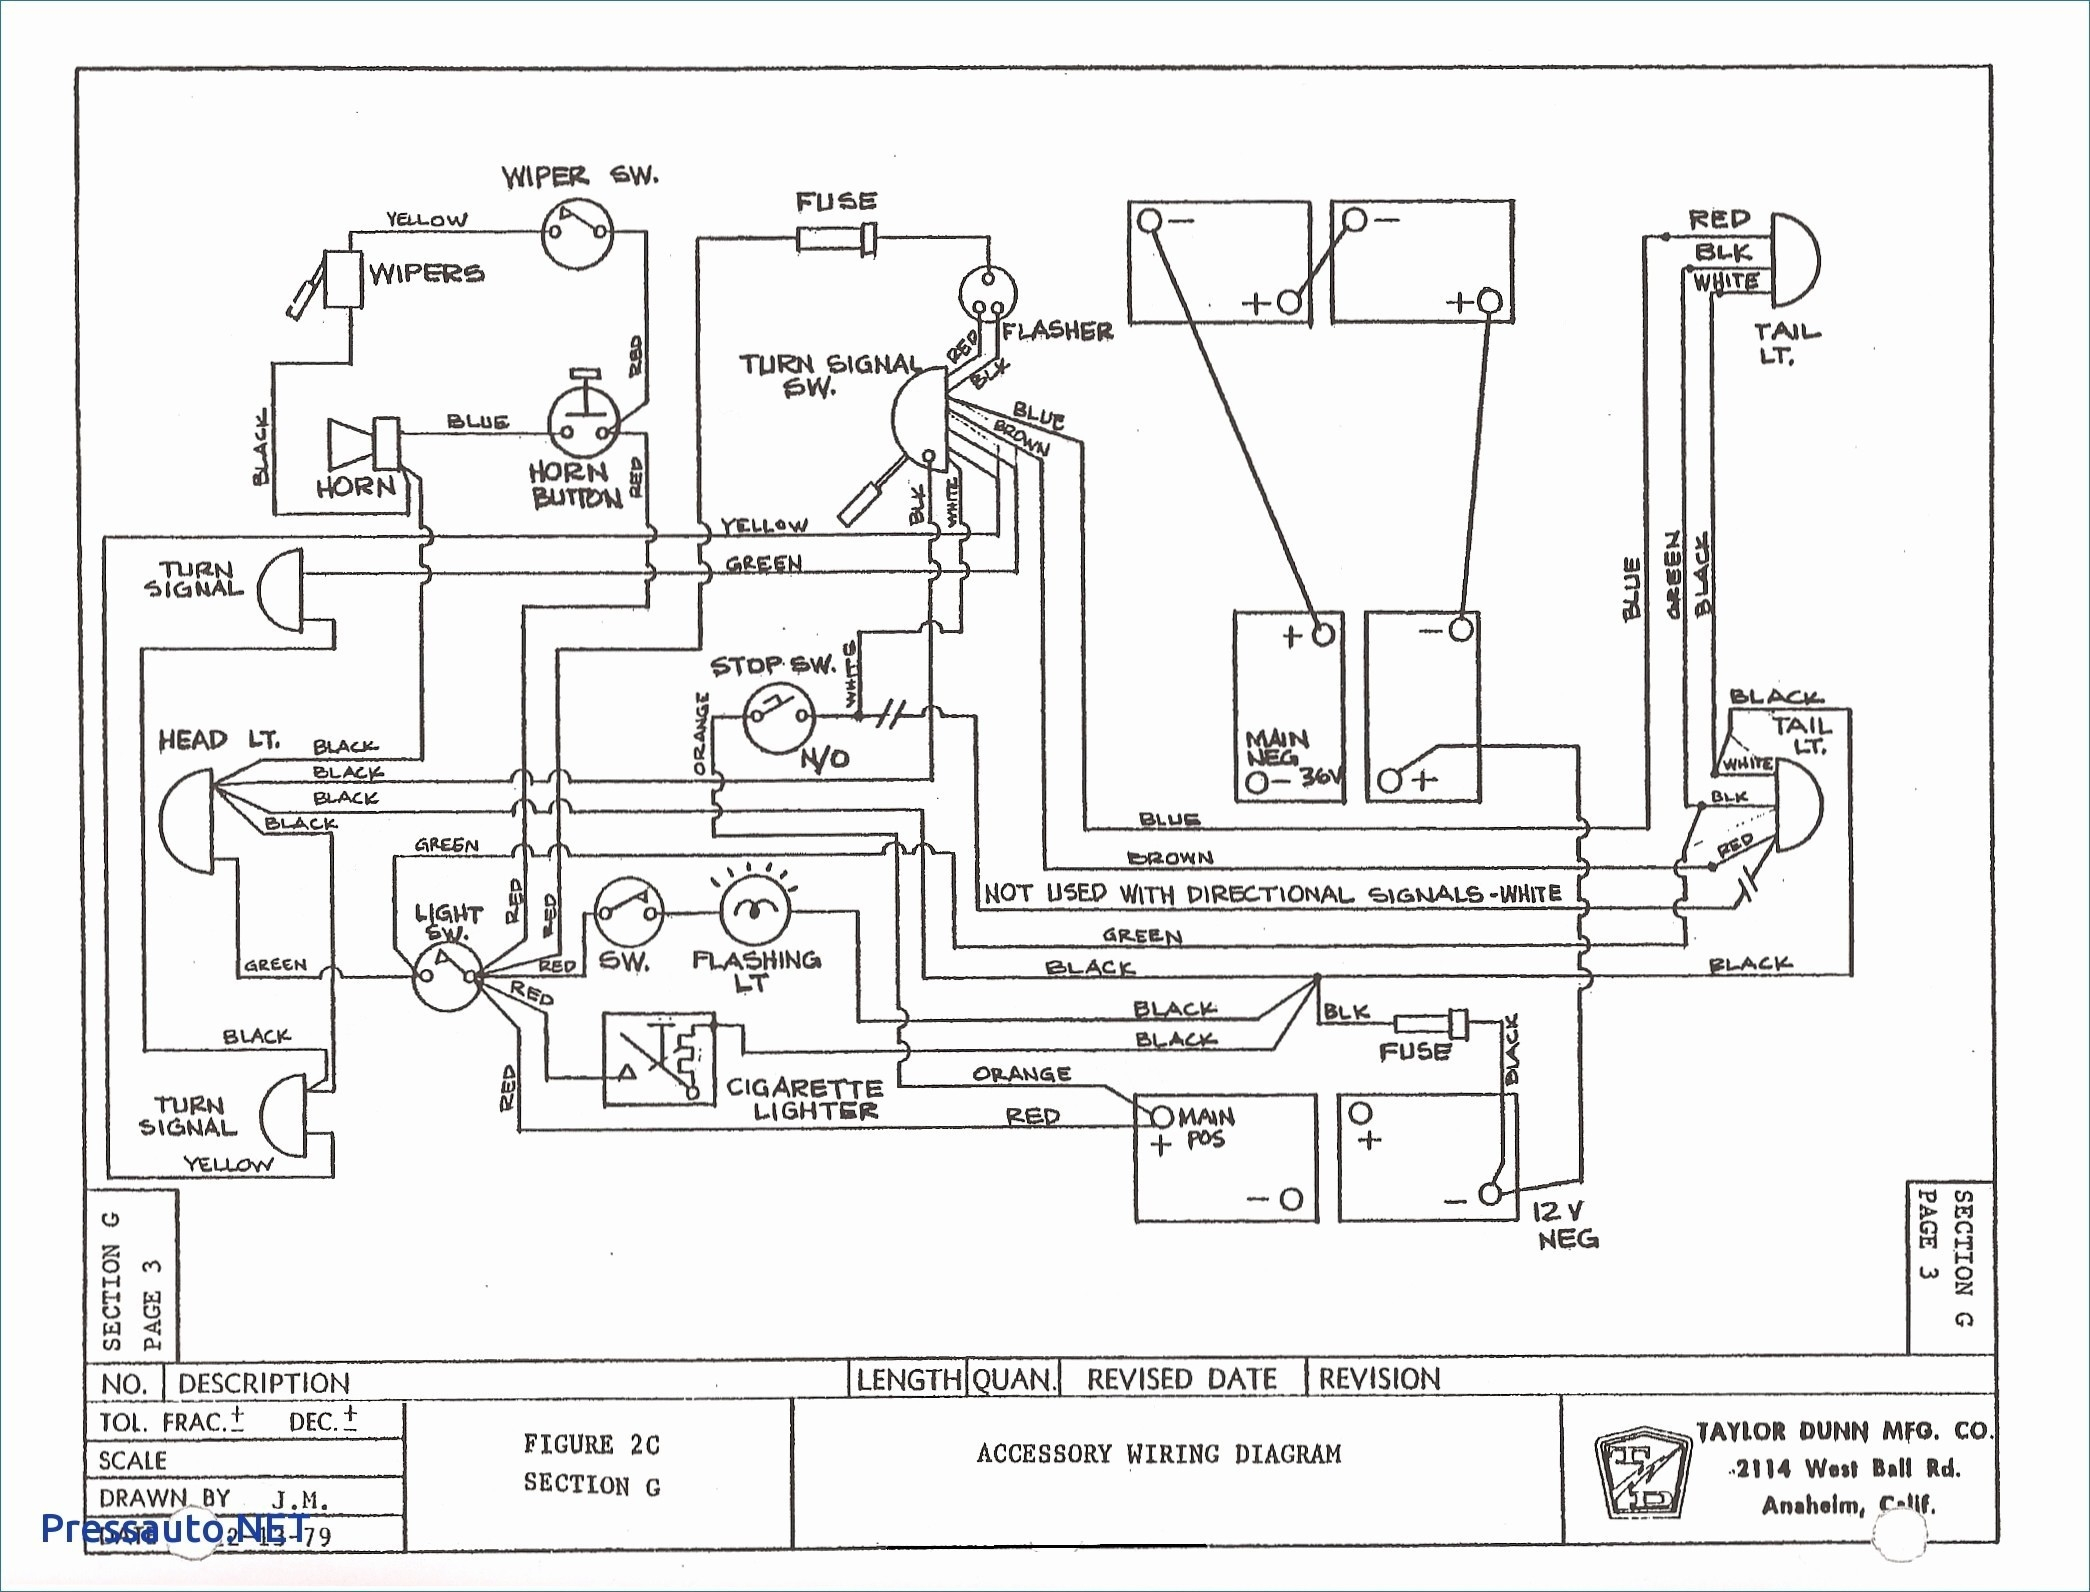 ezgo marathon wiring diagram Download-Ezgo Marathon Wiring Diagram 6-b